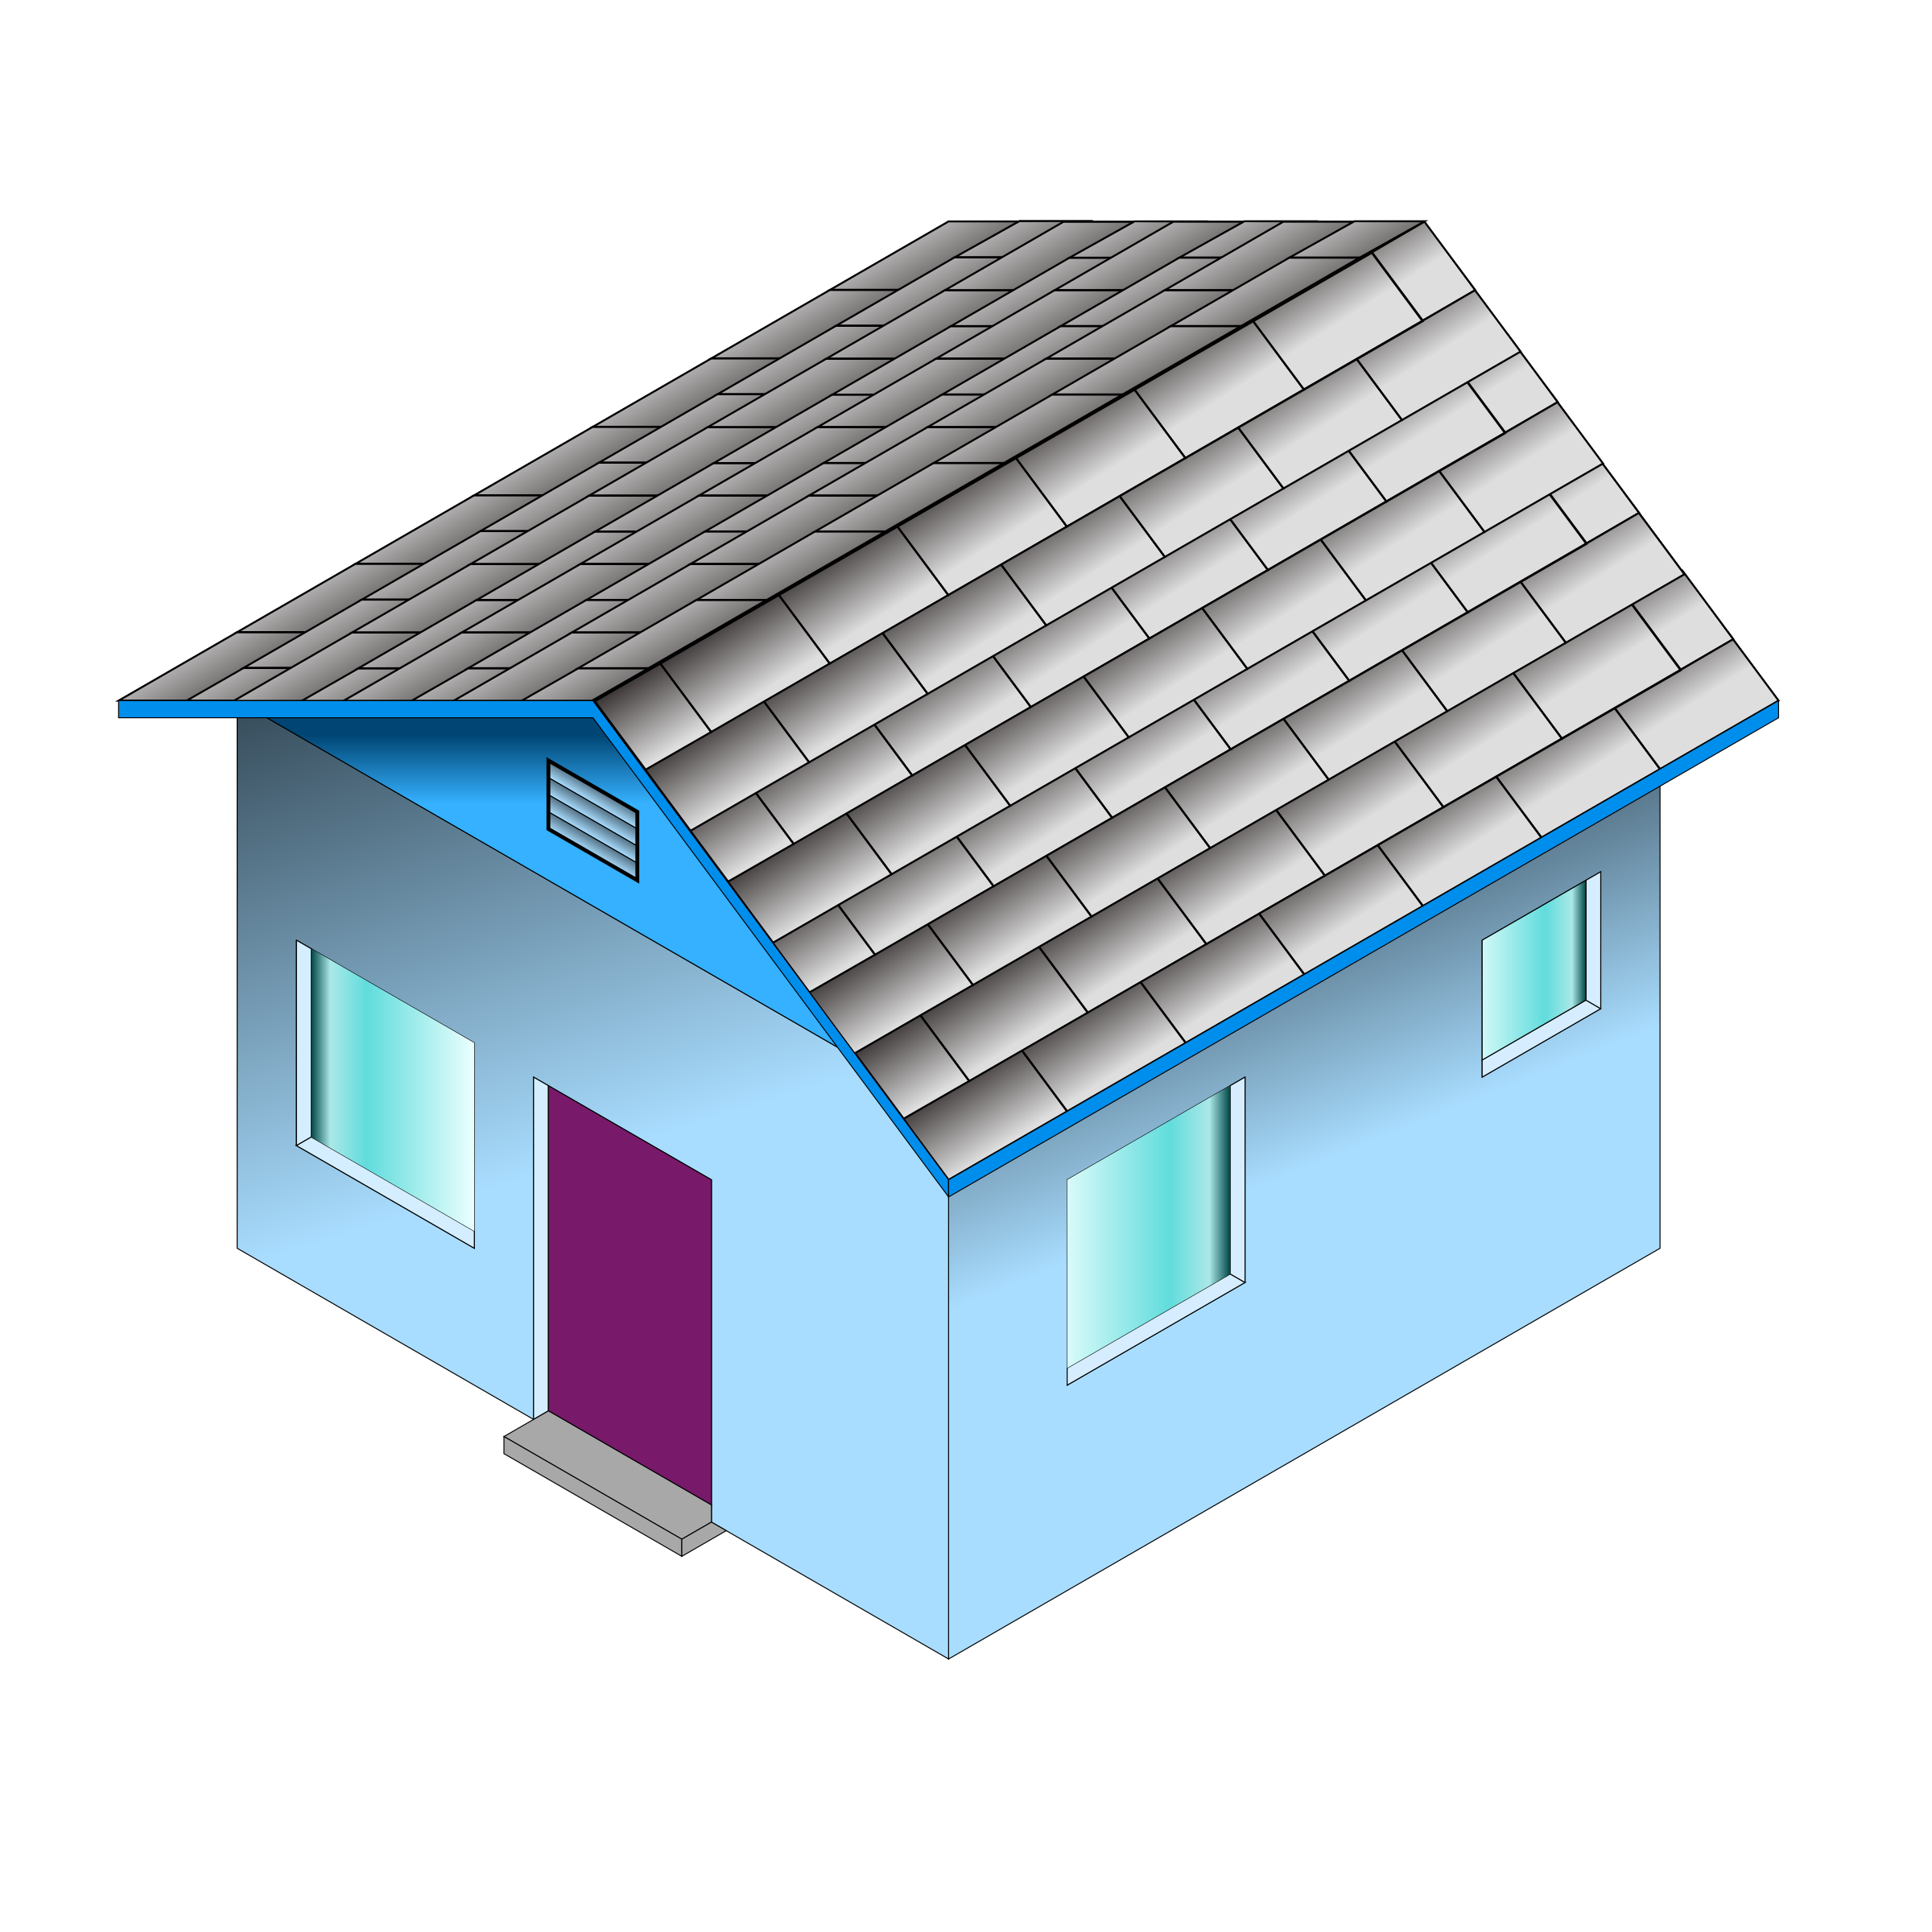 Small house png. Clipart blue big image